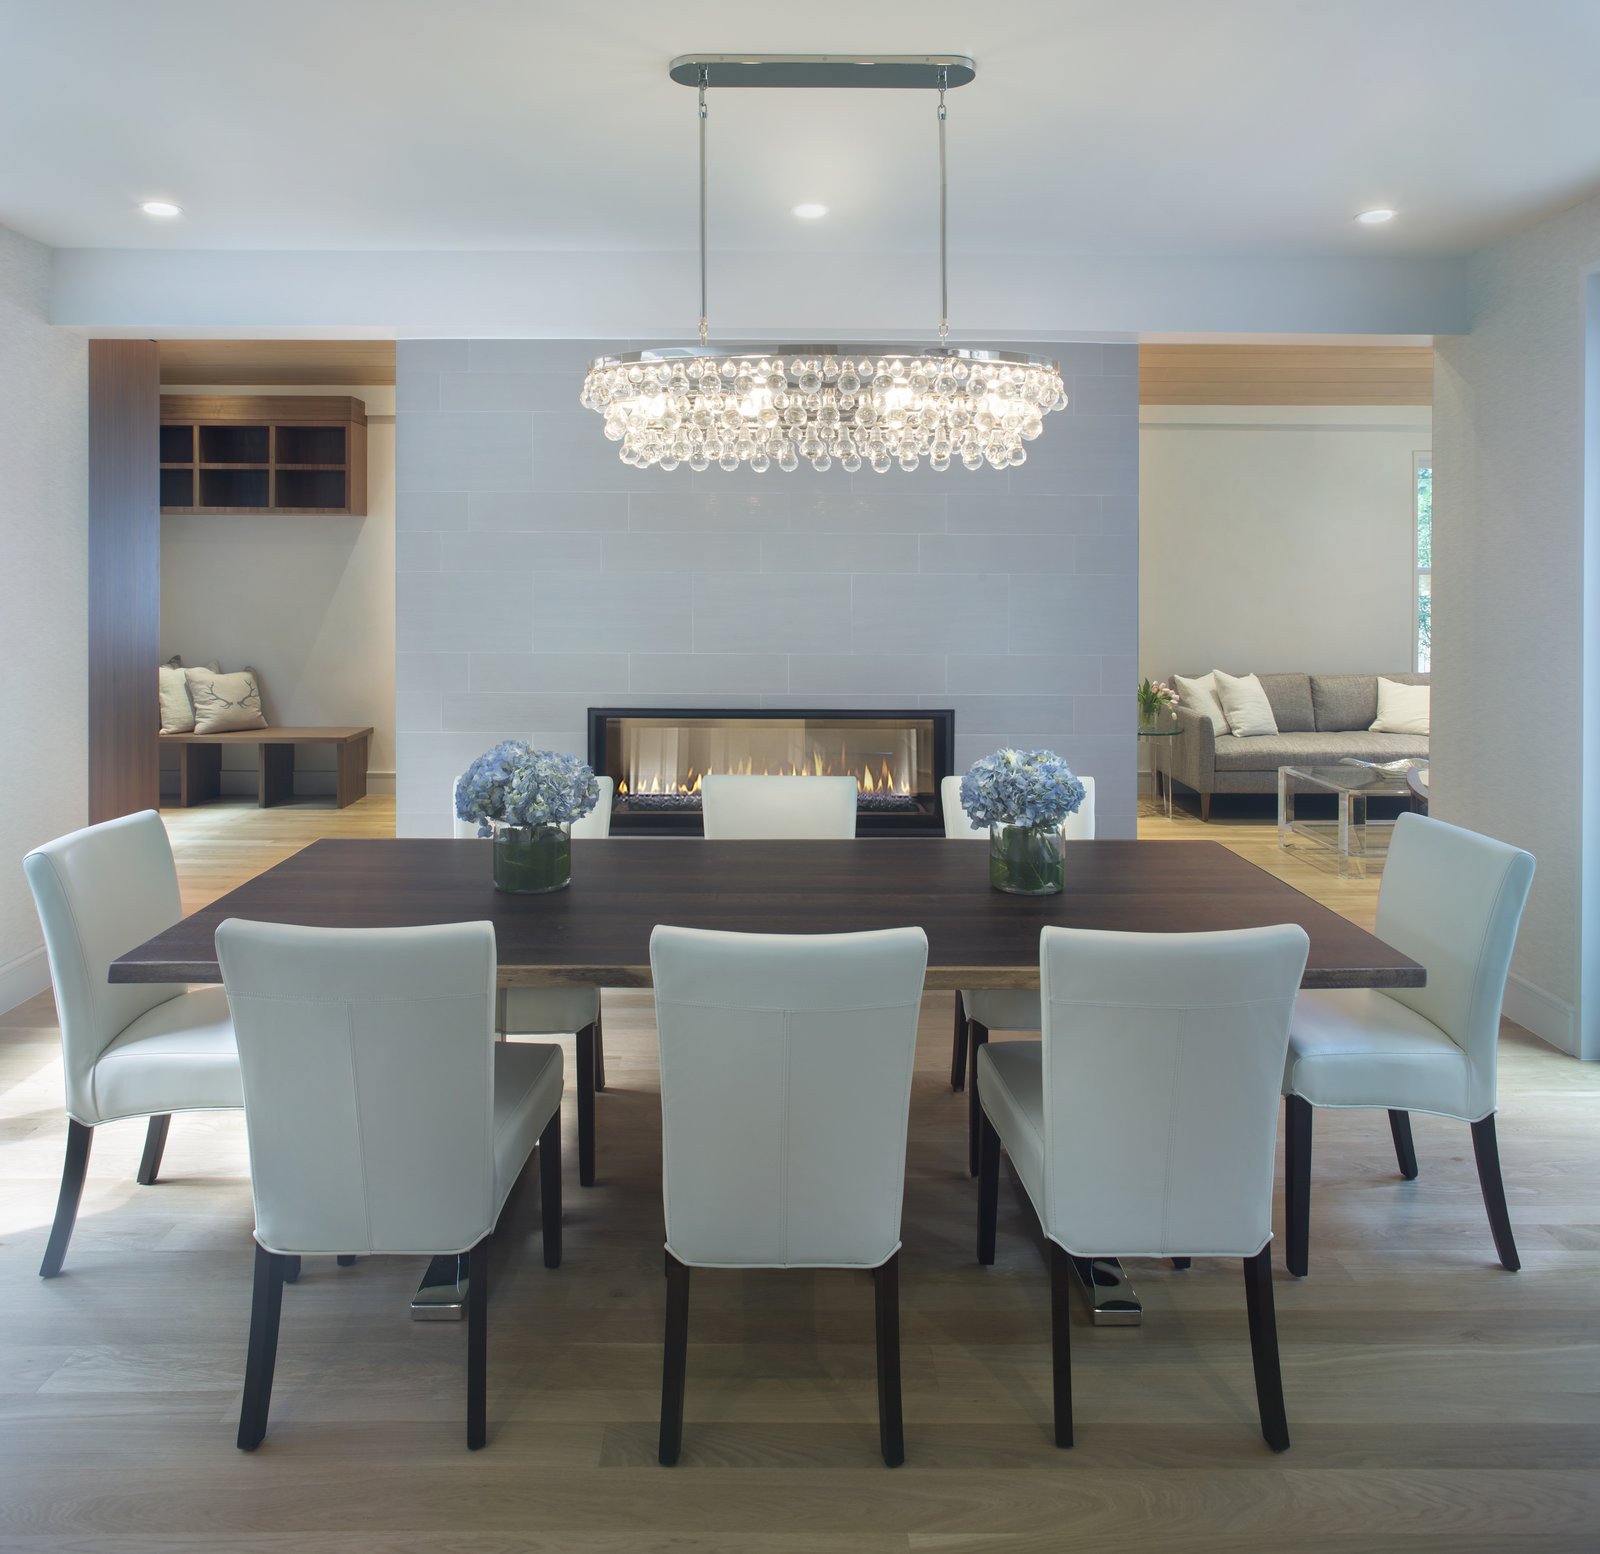 Dining Room Dining   Smuggler Grove by Forum Phi Architecture | Interiors | Planning